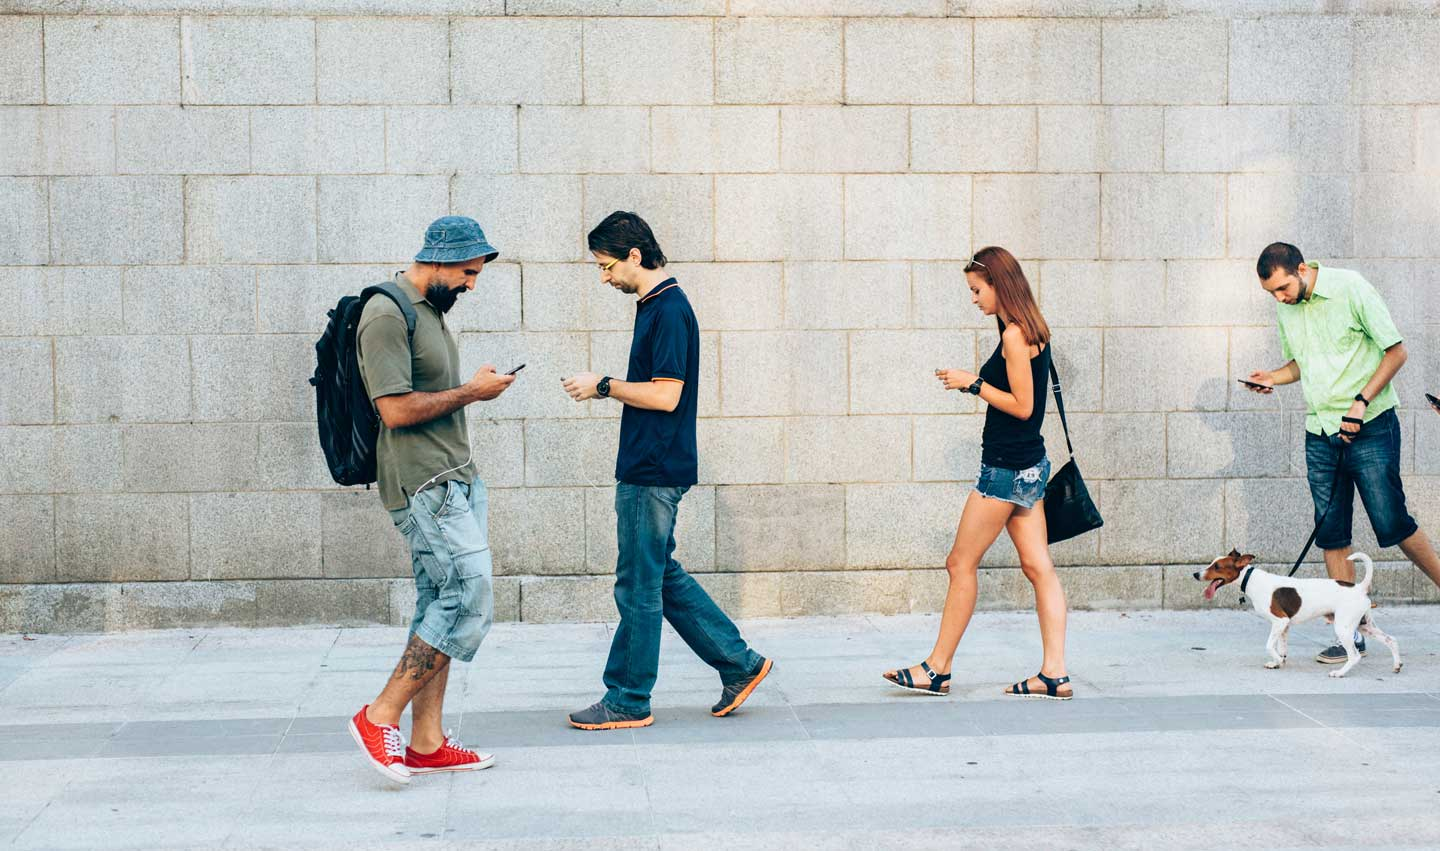 Honolulu Bans Distracted Walking text tax